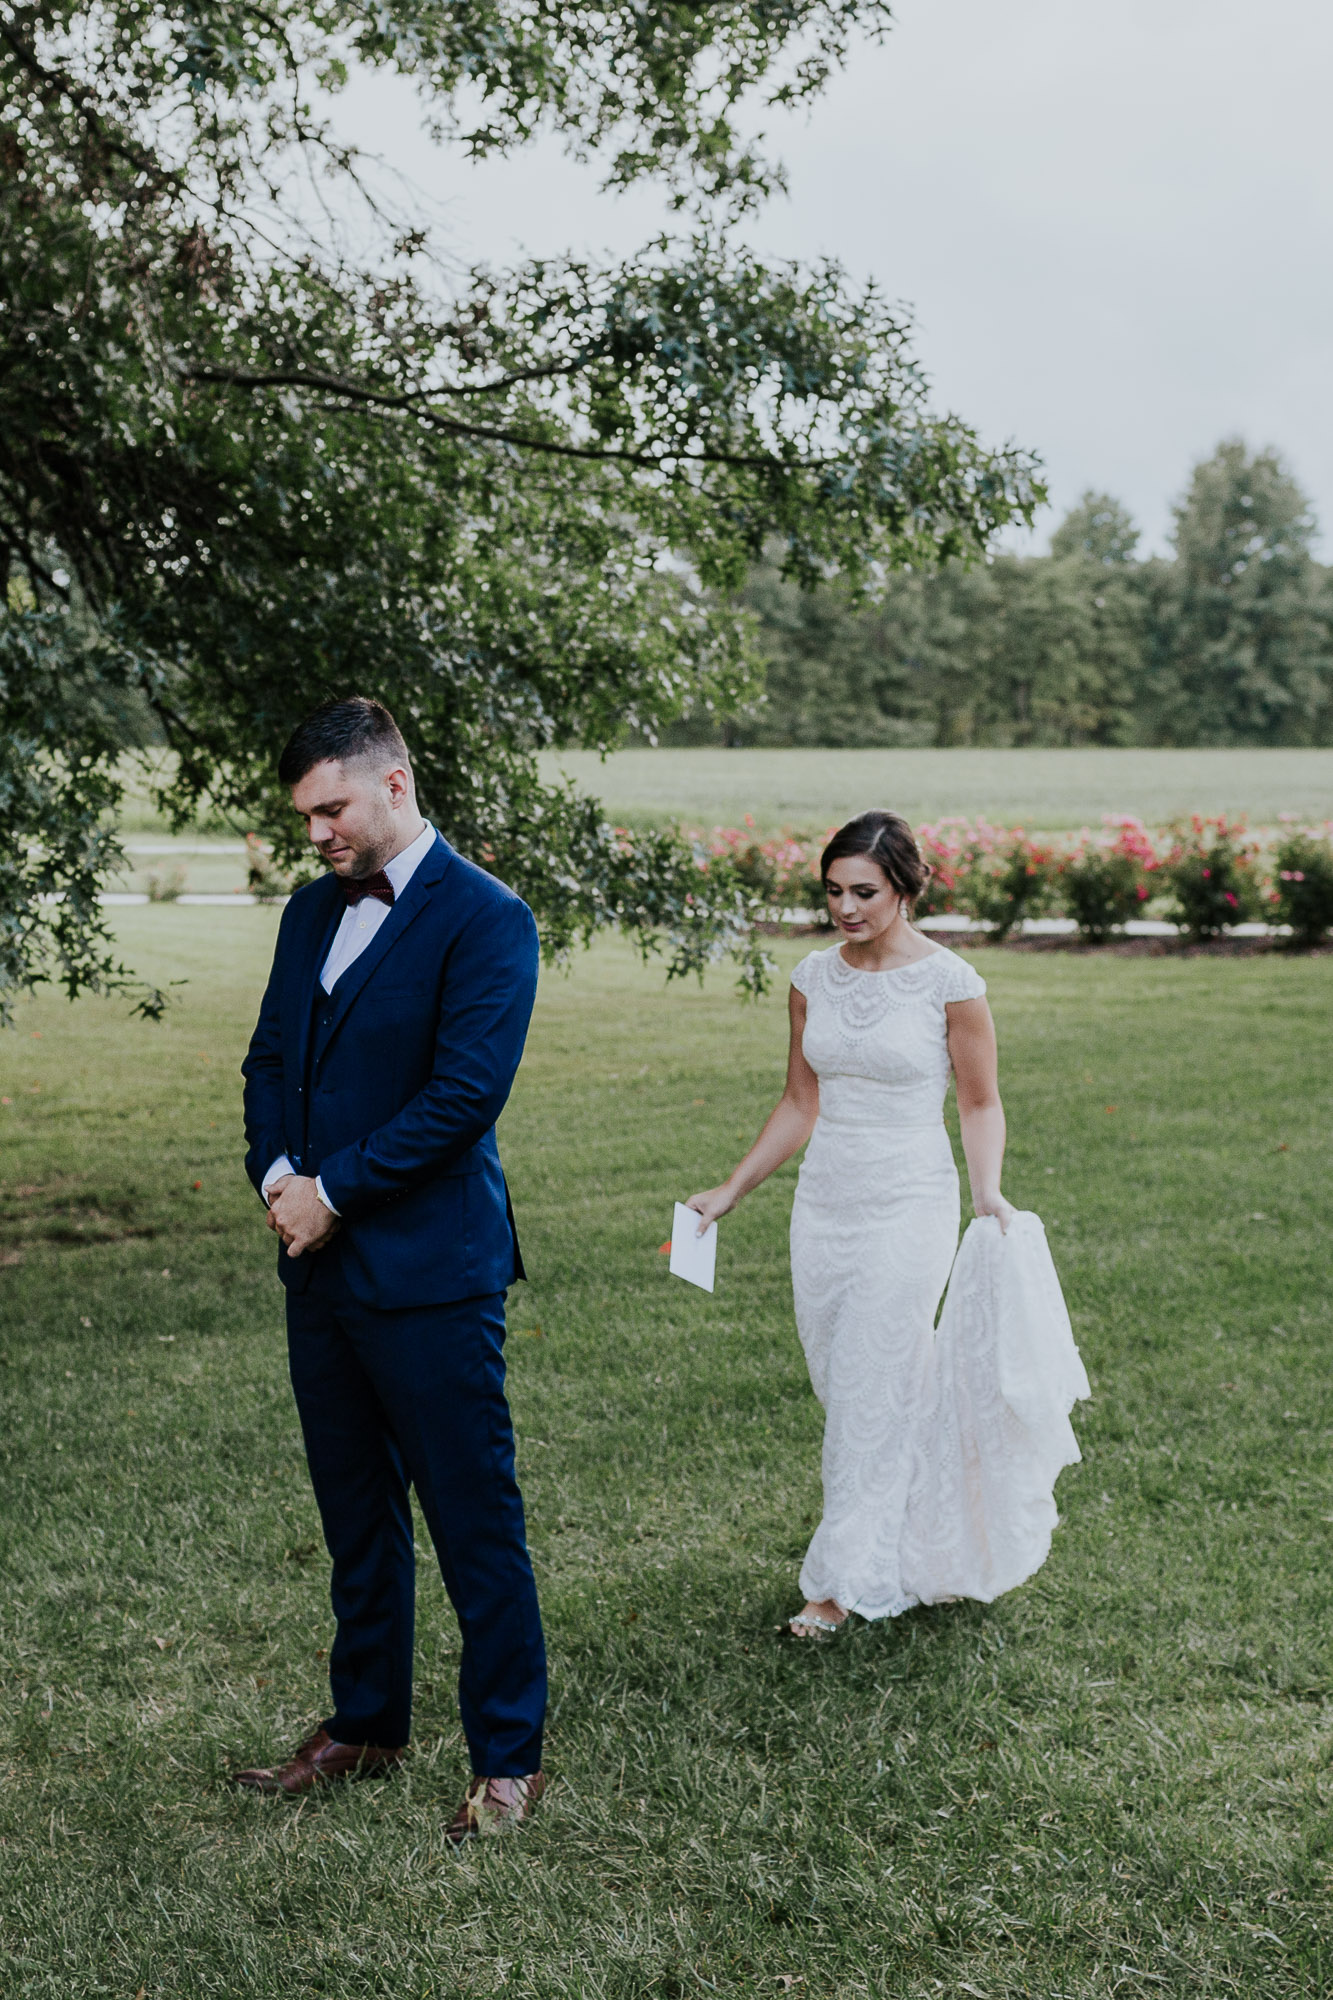 adventurous outdoor wedding southern indiana midwest wedding photographer emotional first look wedding